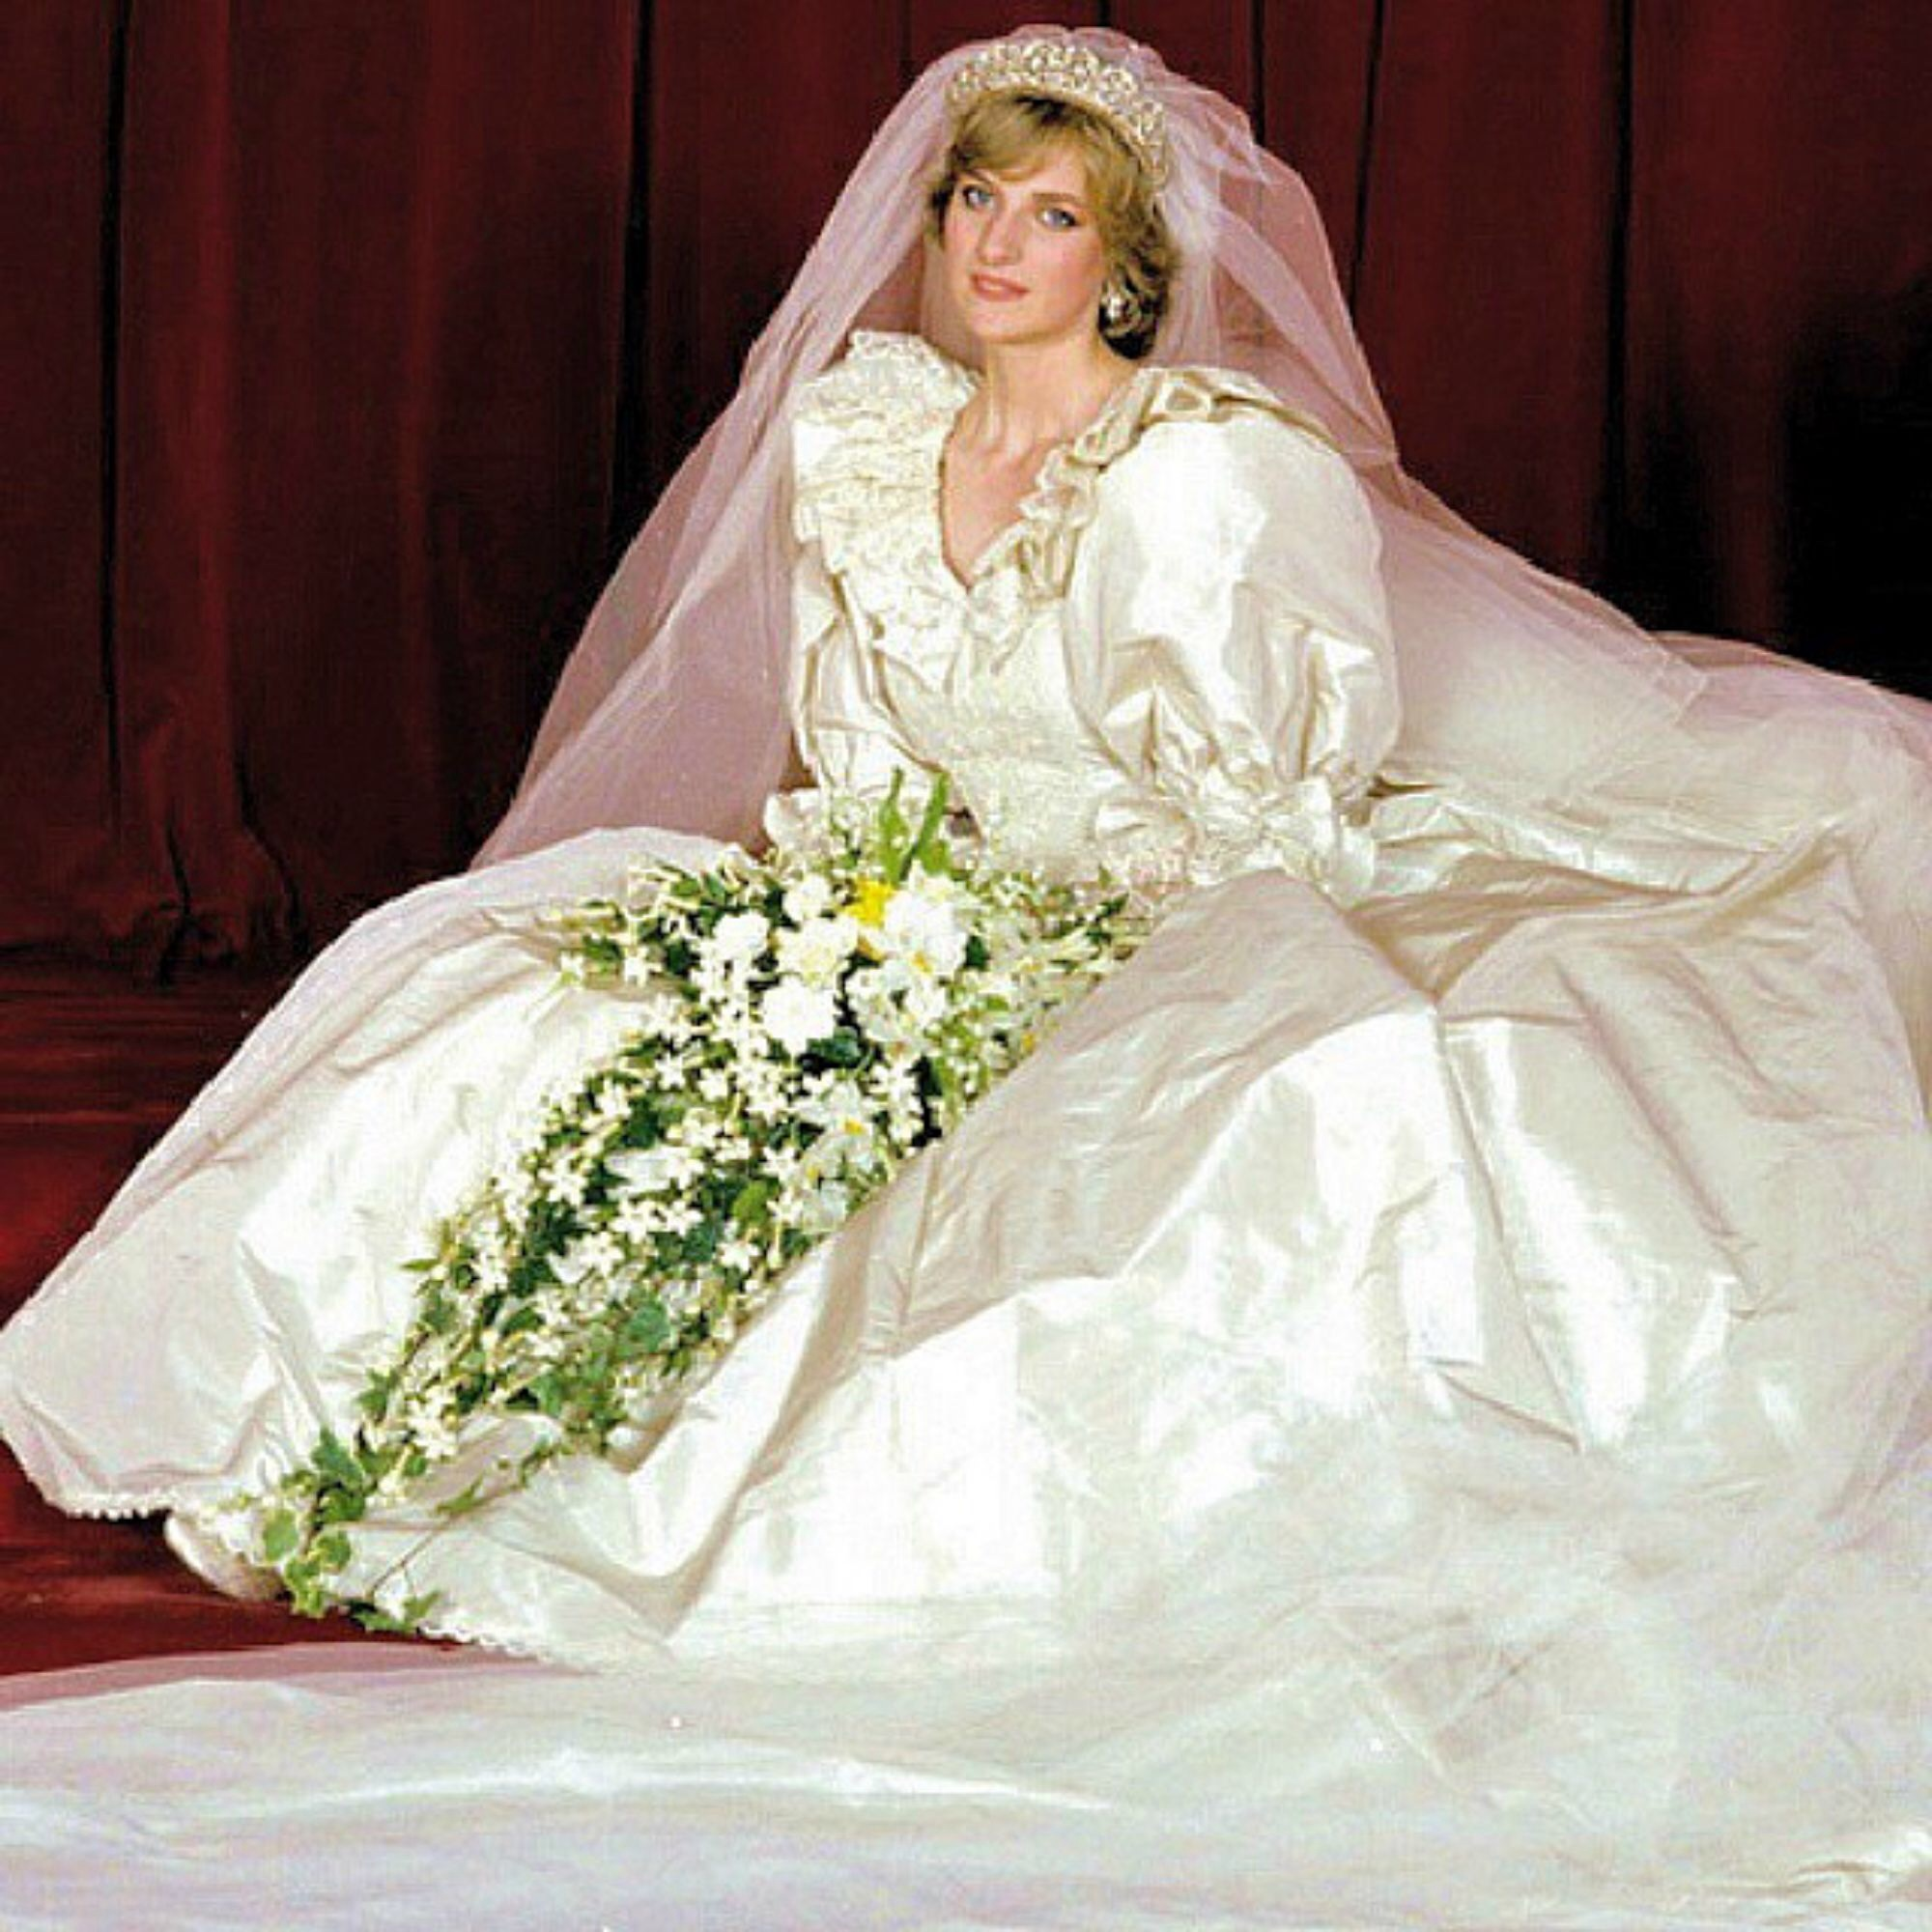 Wedding Dresses Princess Diana Wedding Dresses In Jax